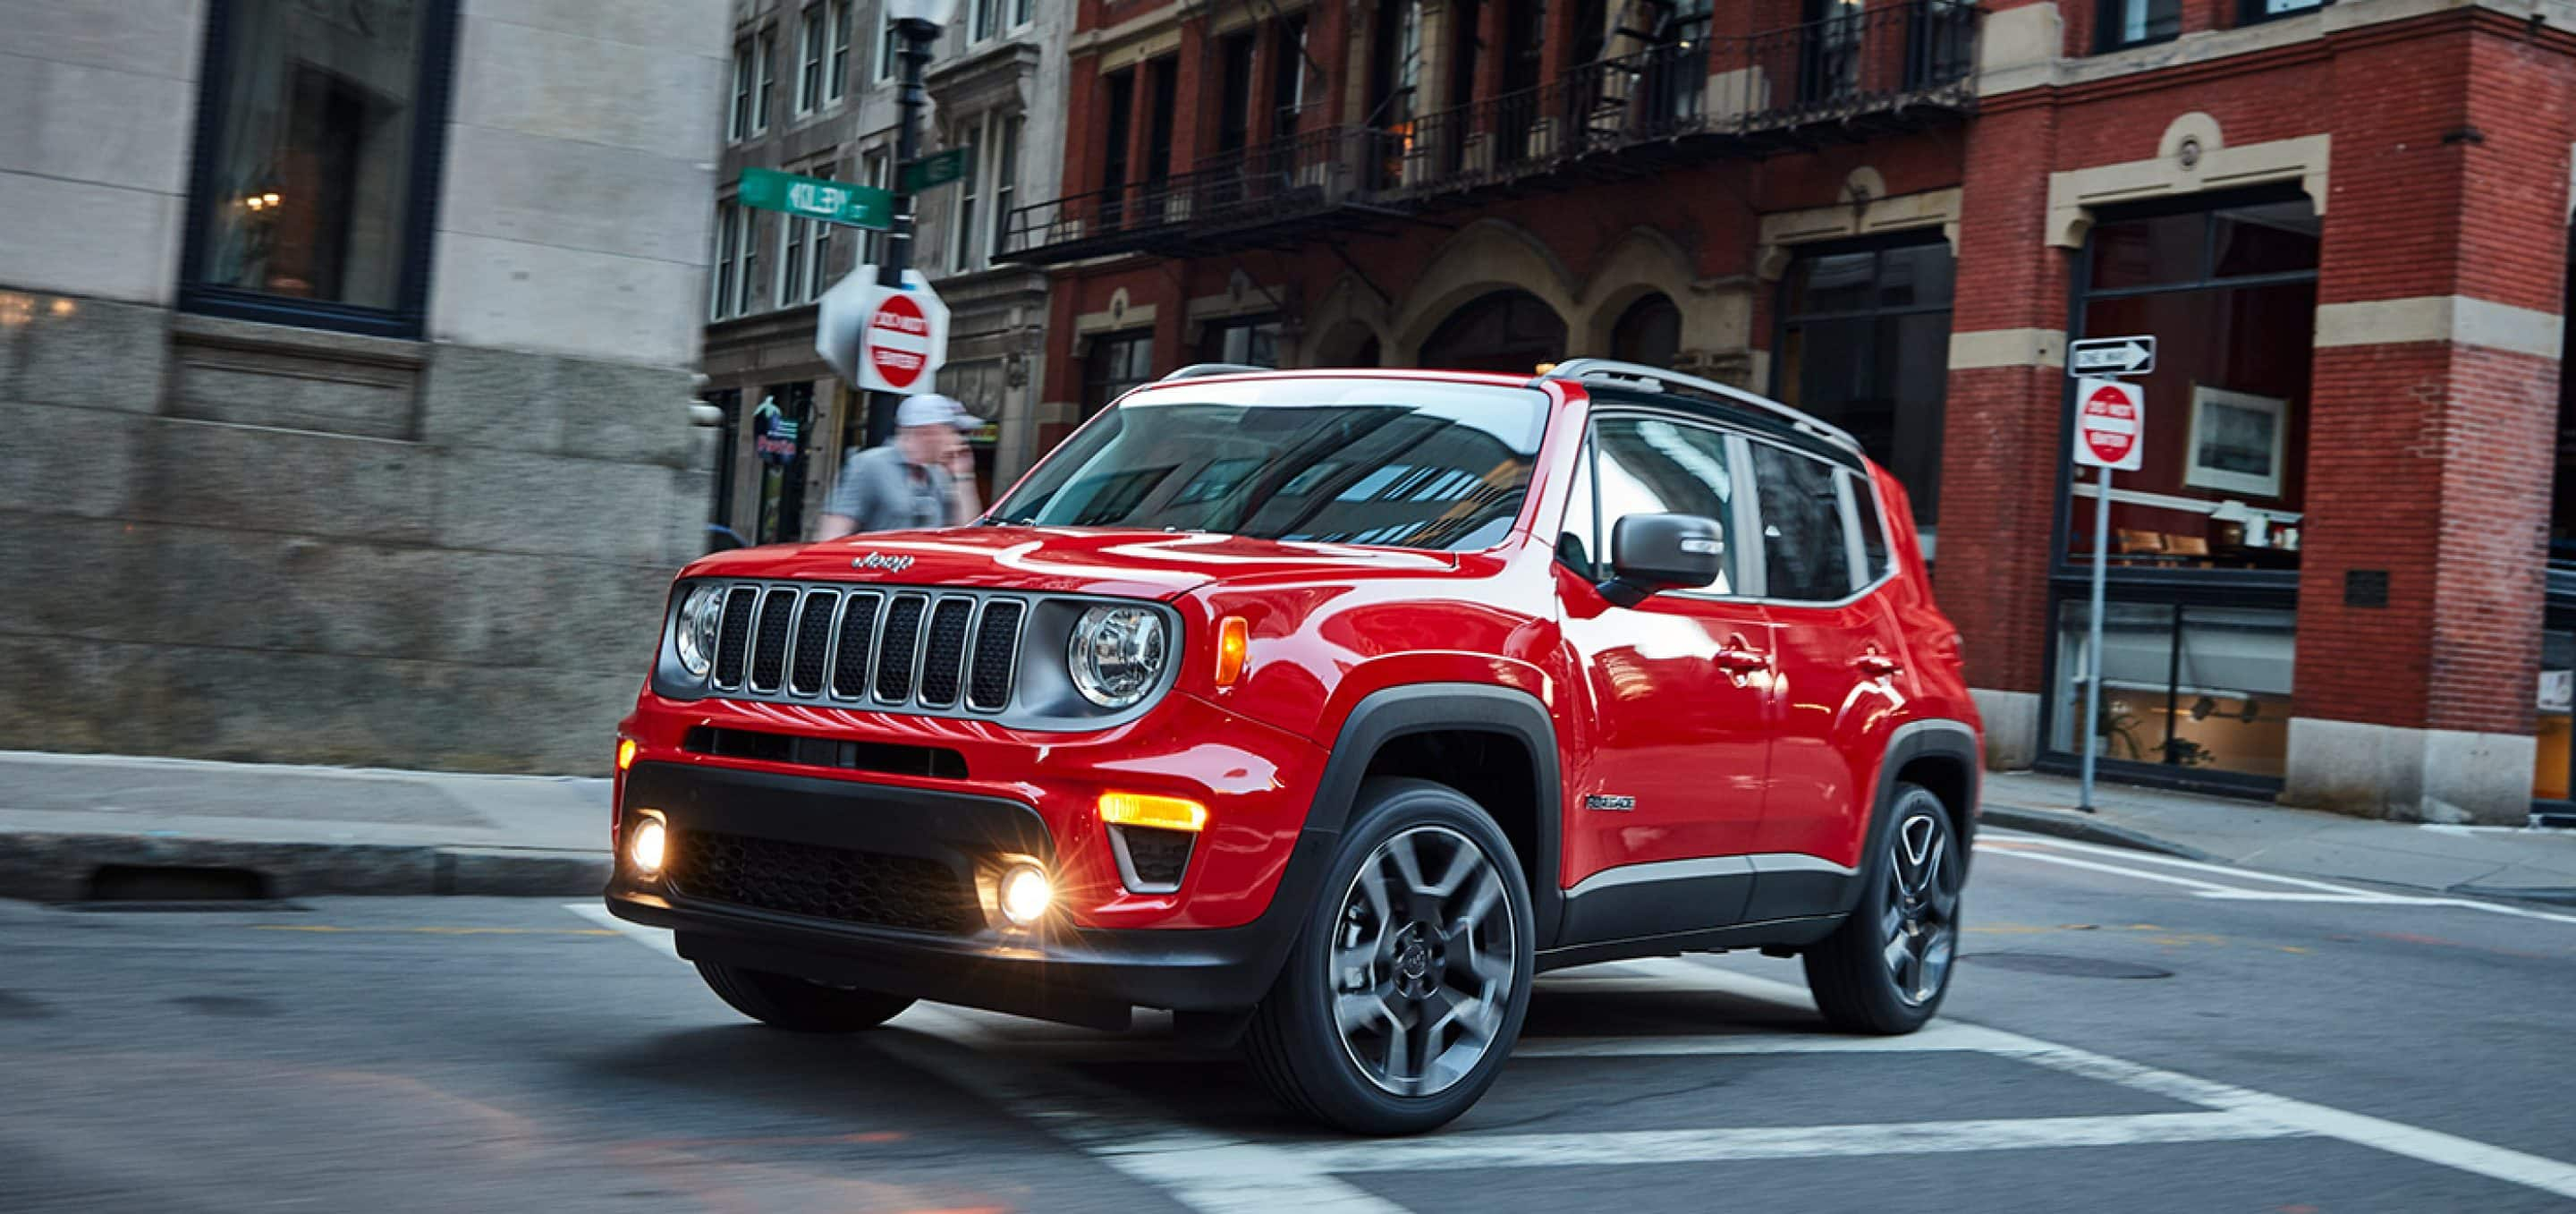 Trim Levels of the 2021 Jeep Renegade